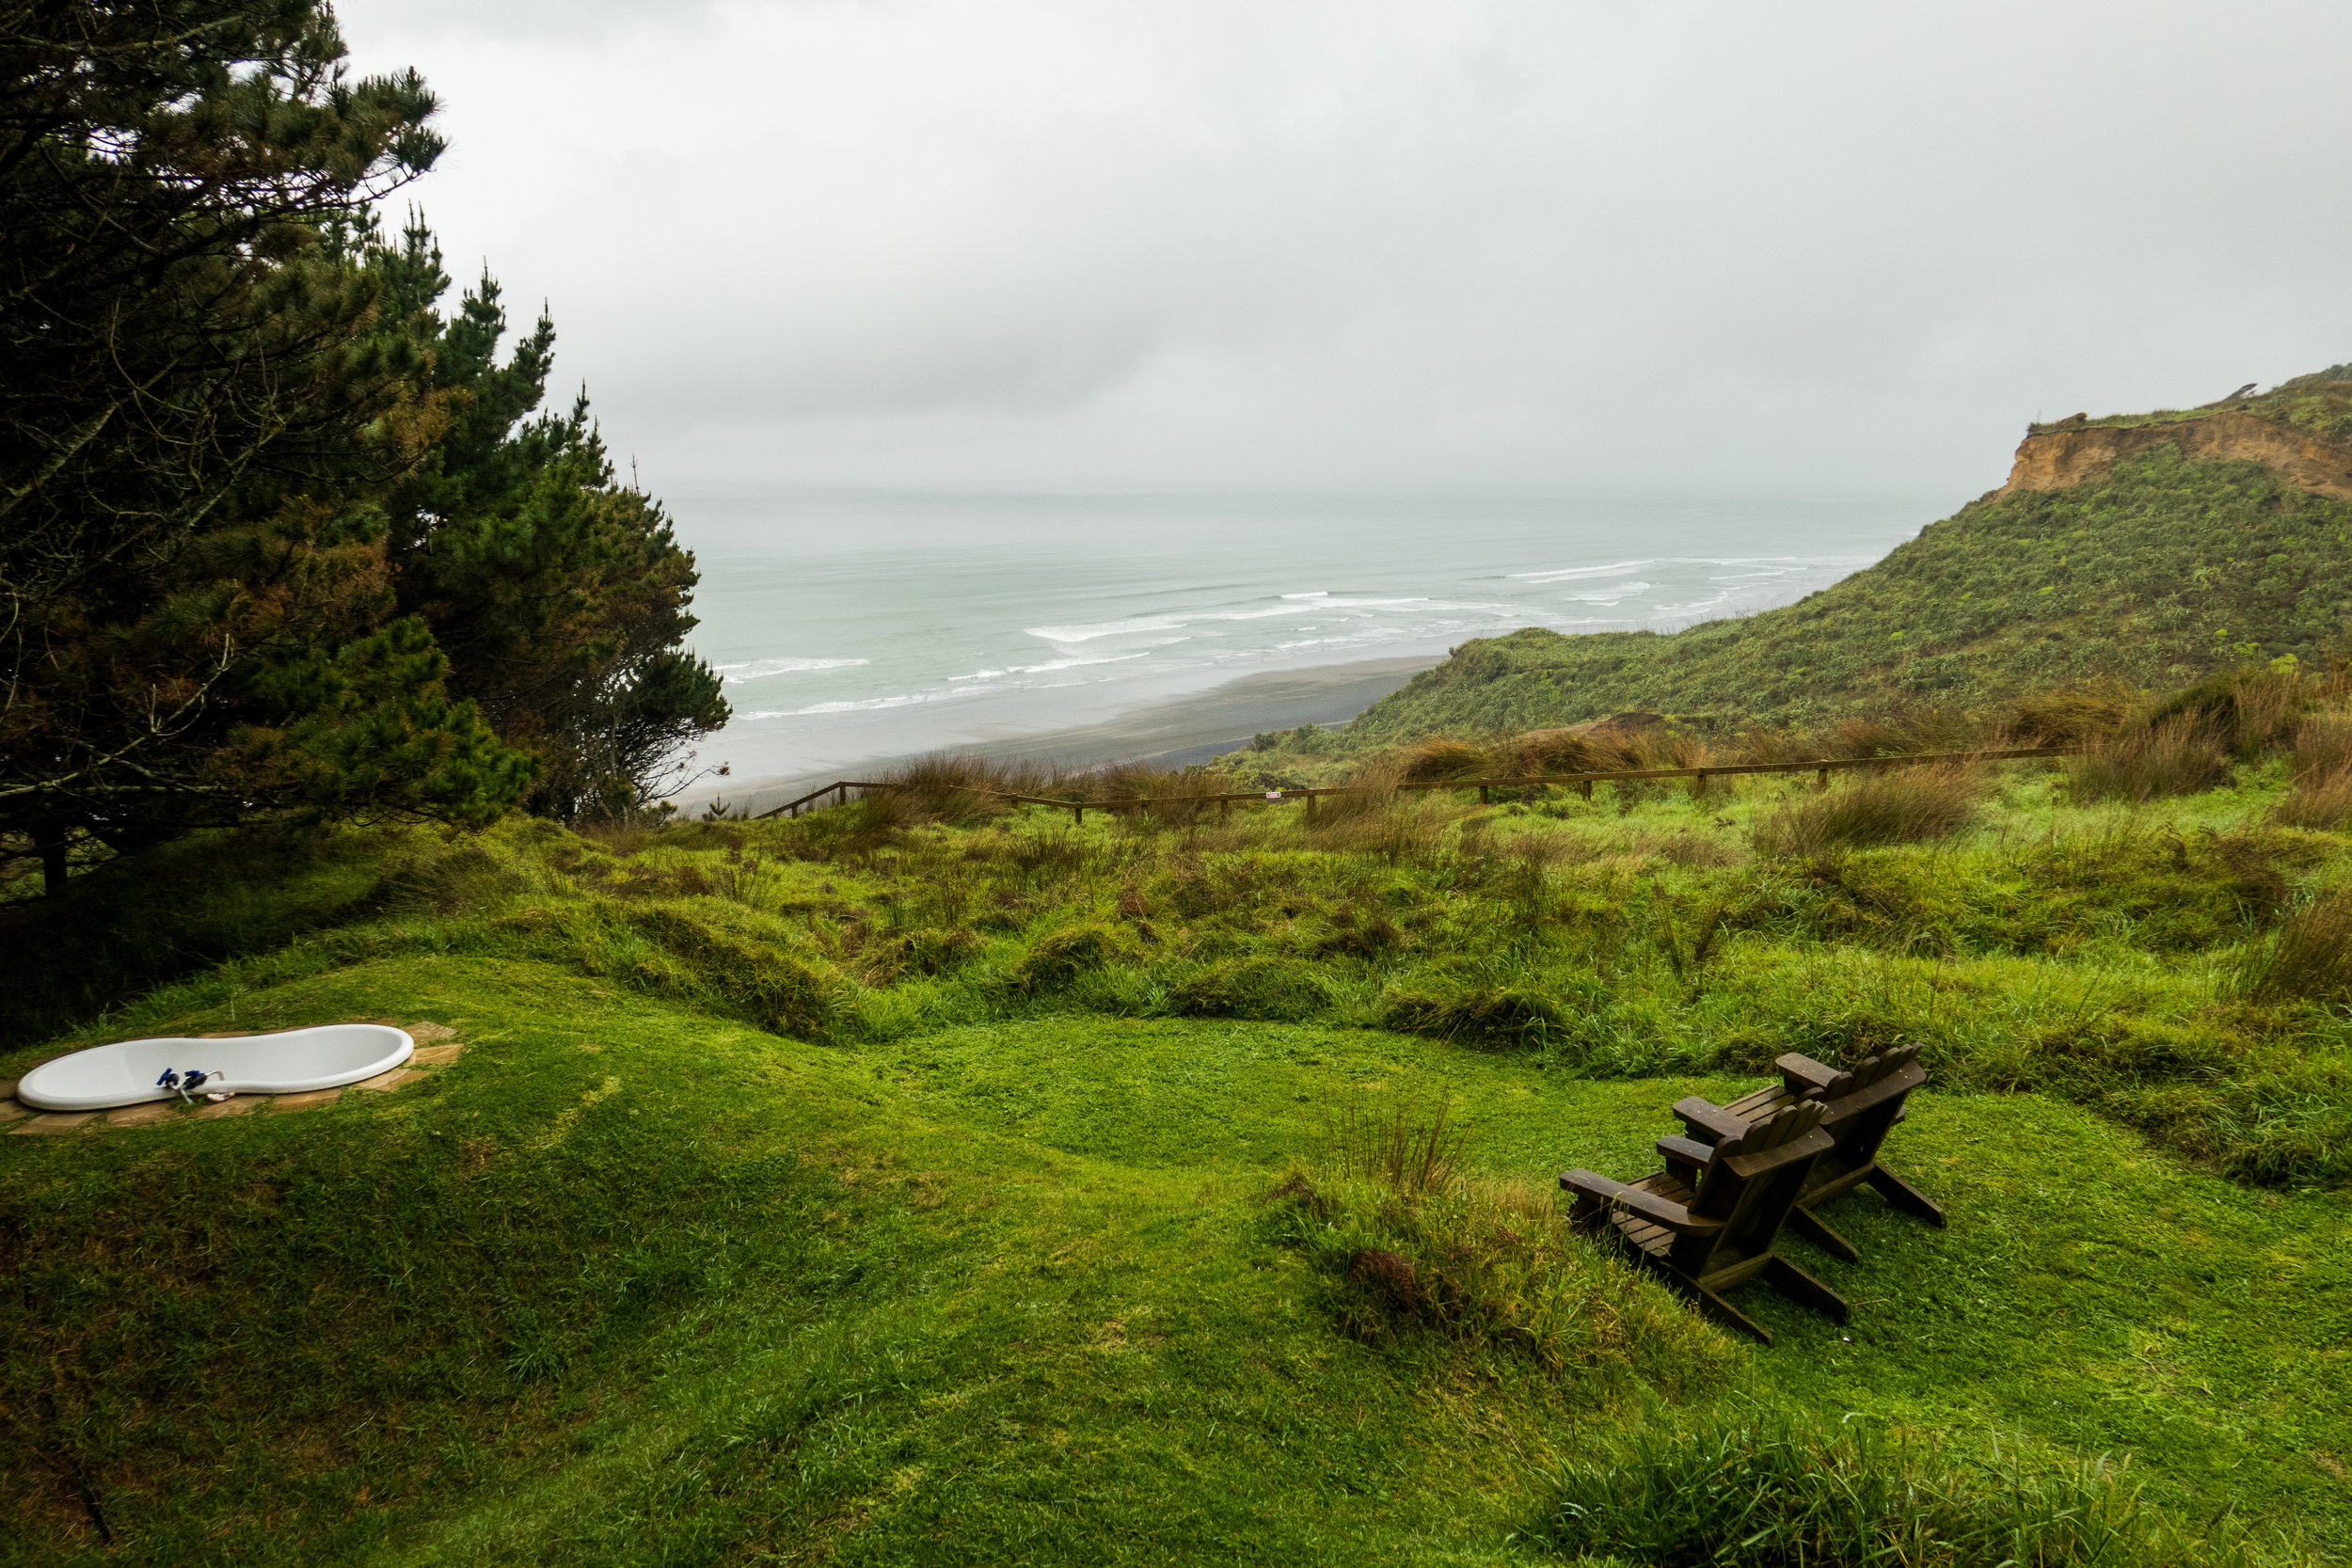 View over Karioitahi Beach near Auckland from our glamping hut. Note the awesome bath tub just for us